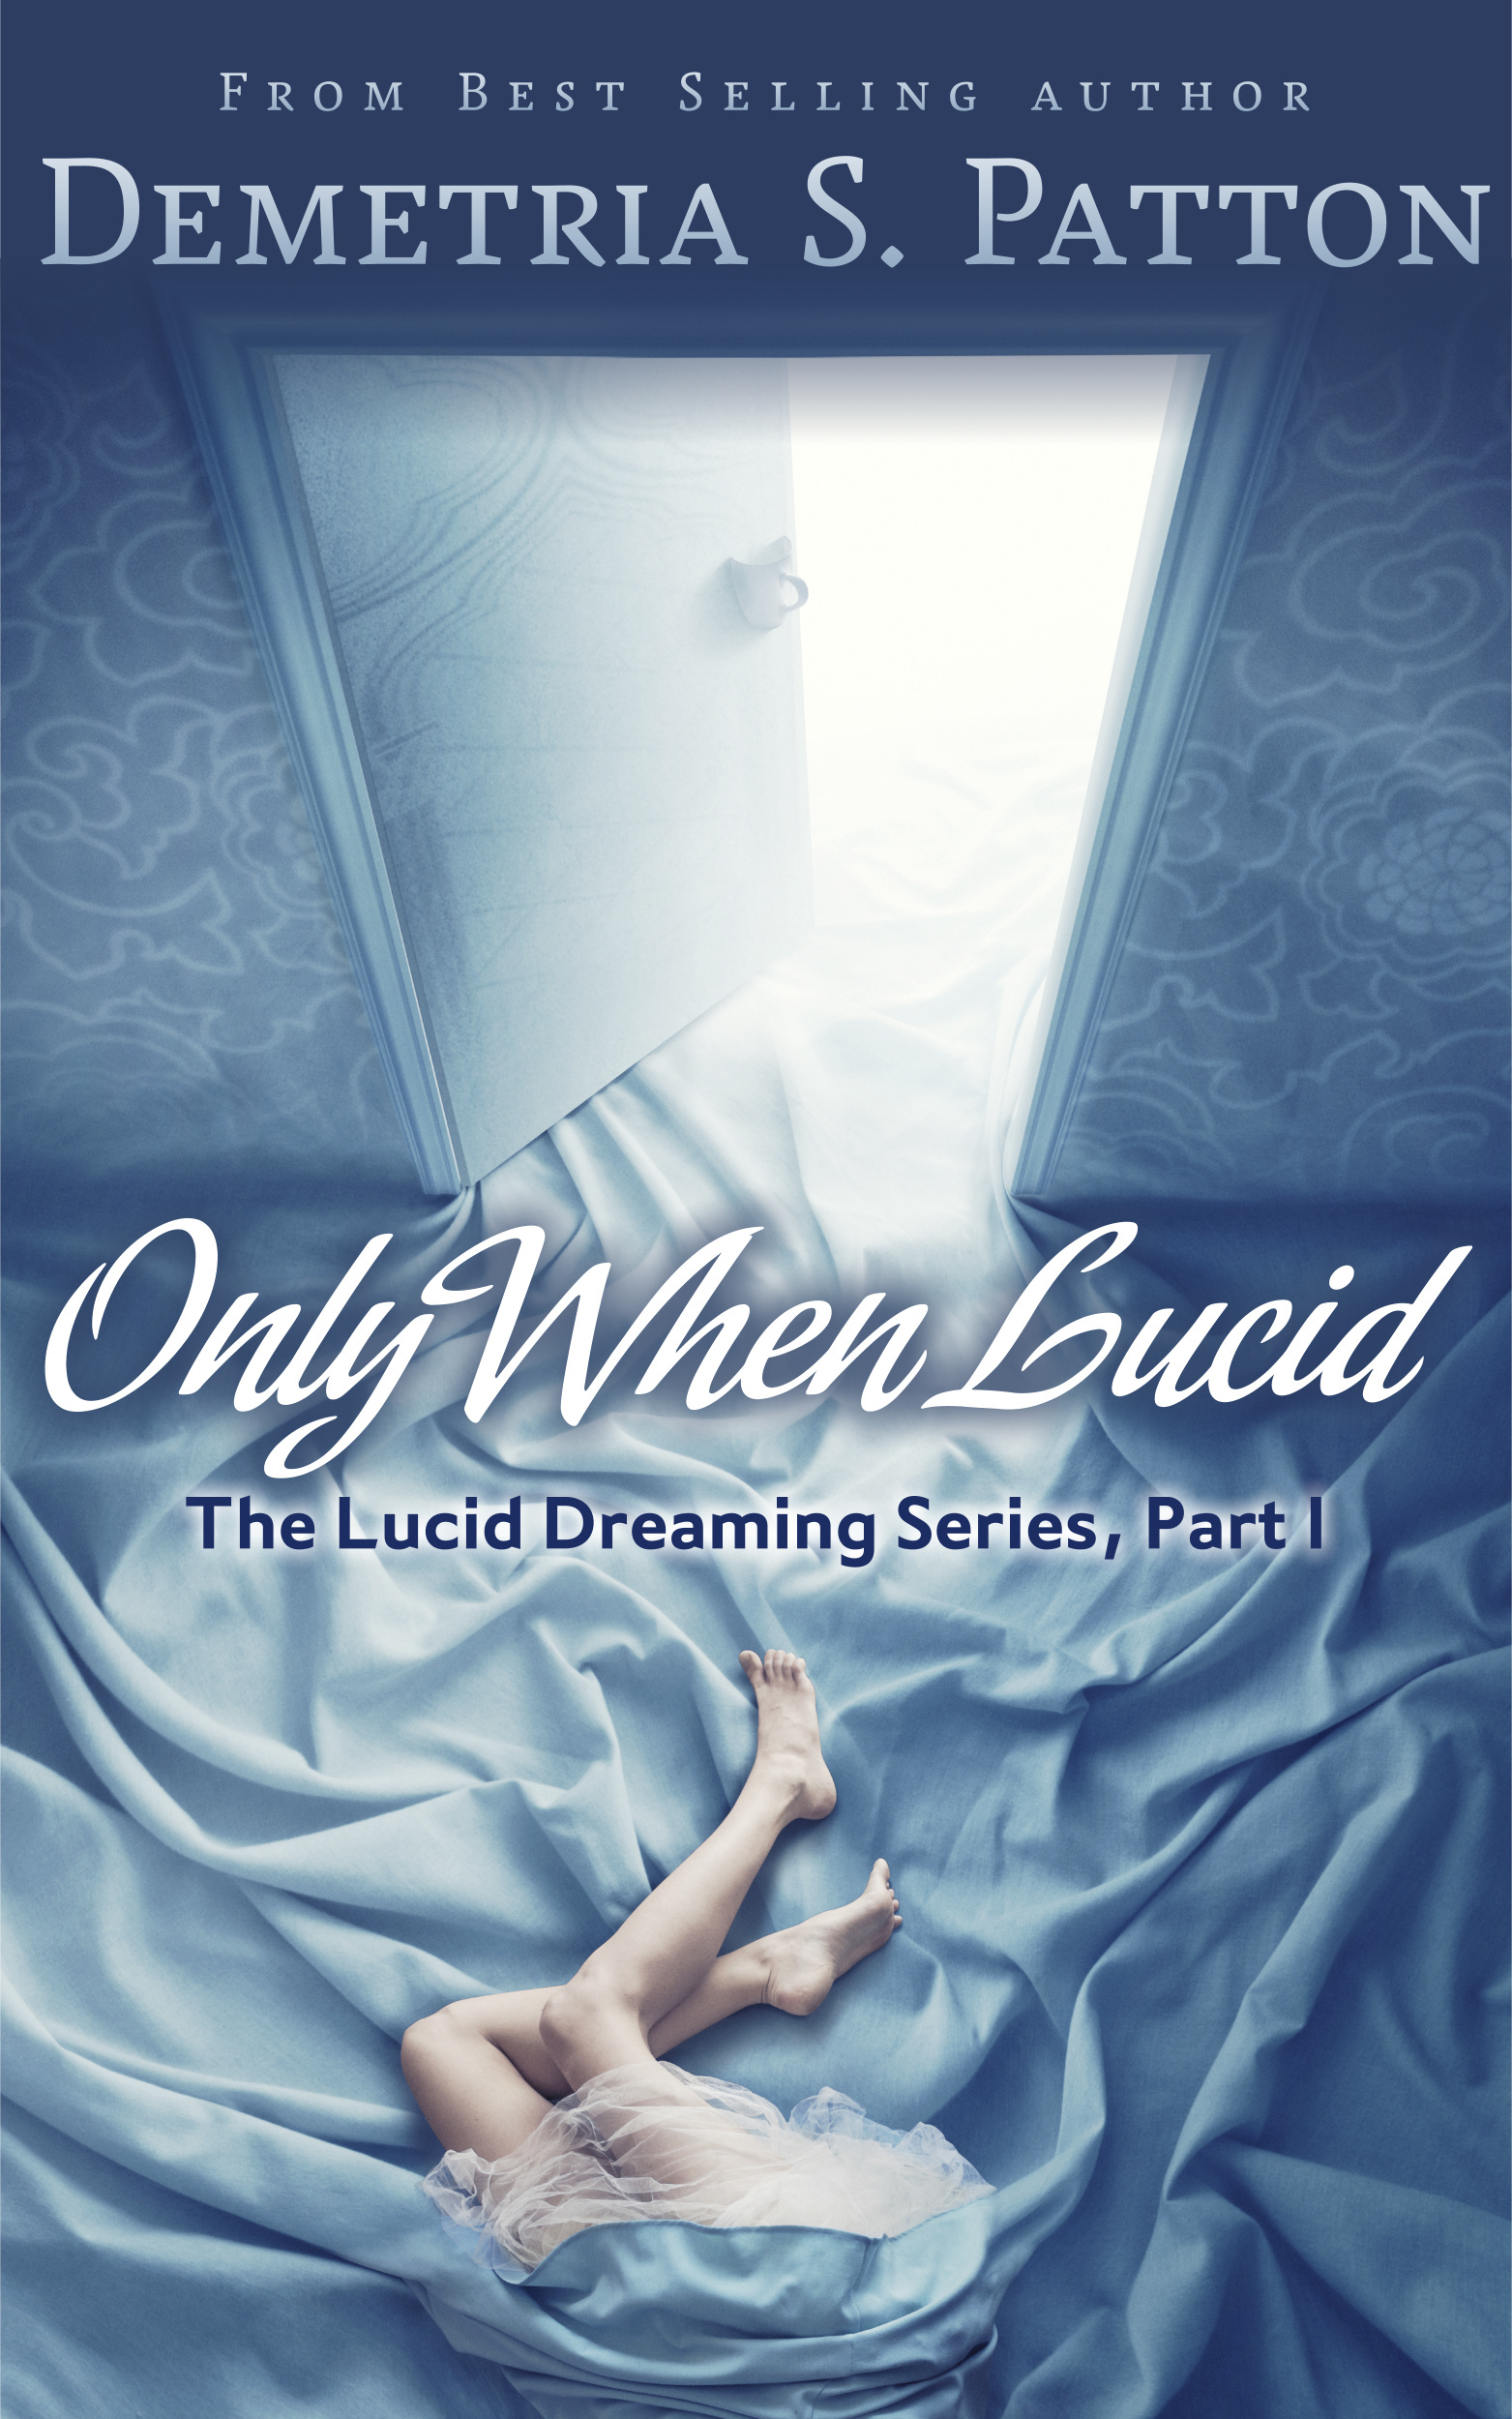 Only When Lucid: The Lucid Dreaming Series Part 1  by  D.S. Patton